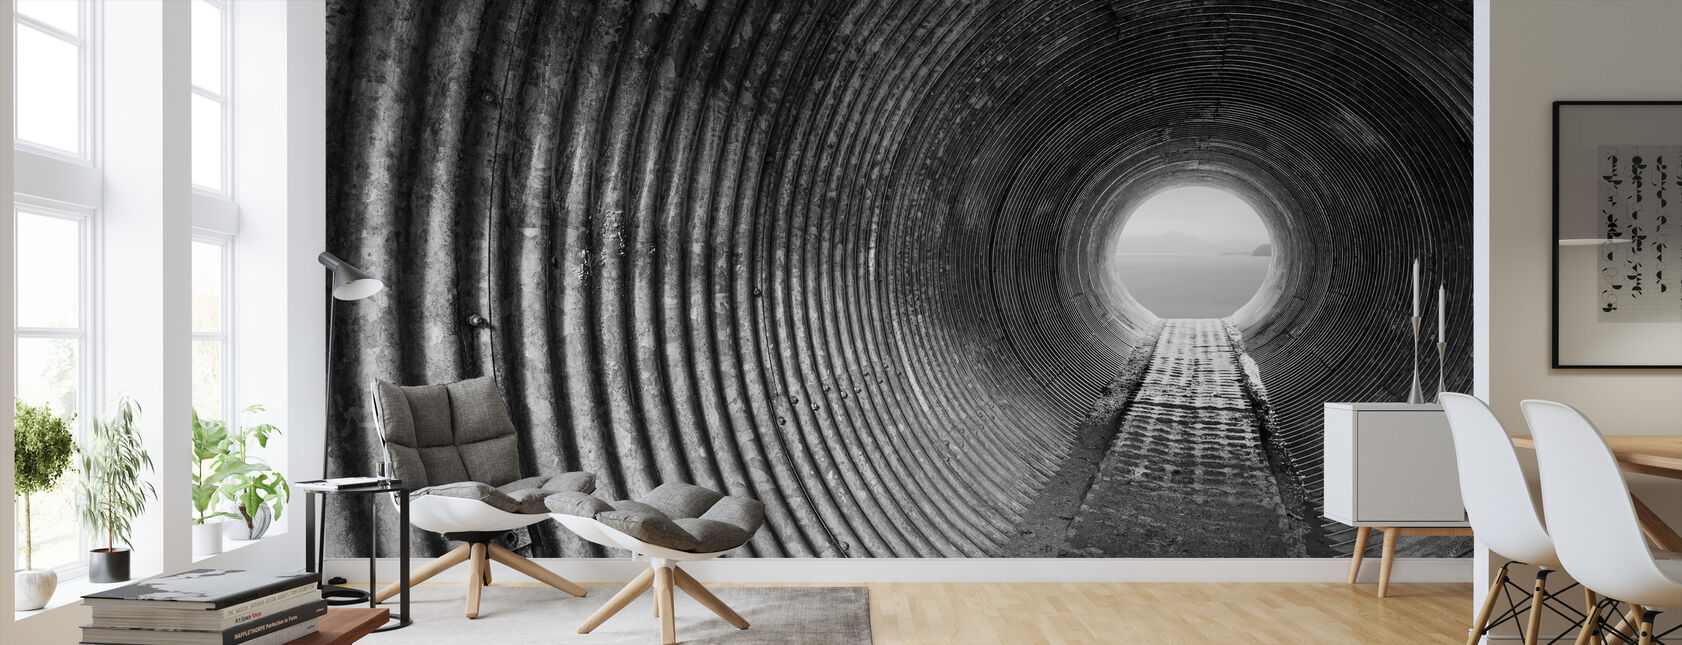 Corrugated Tunnel - Wallpaper - Living Room